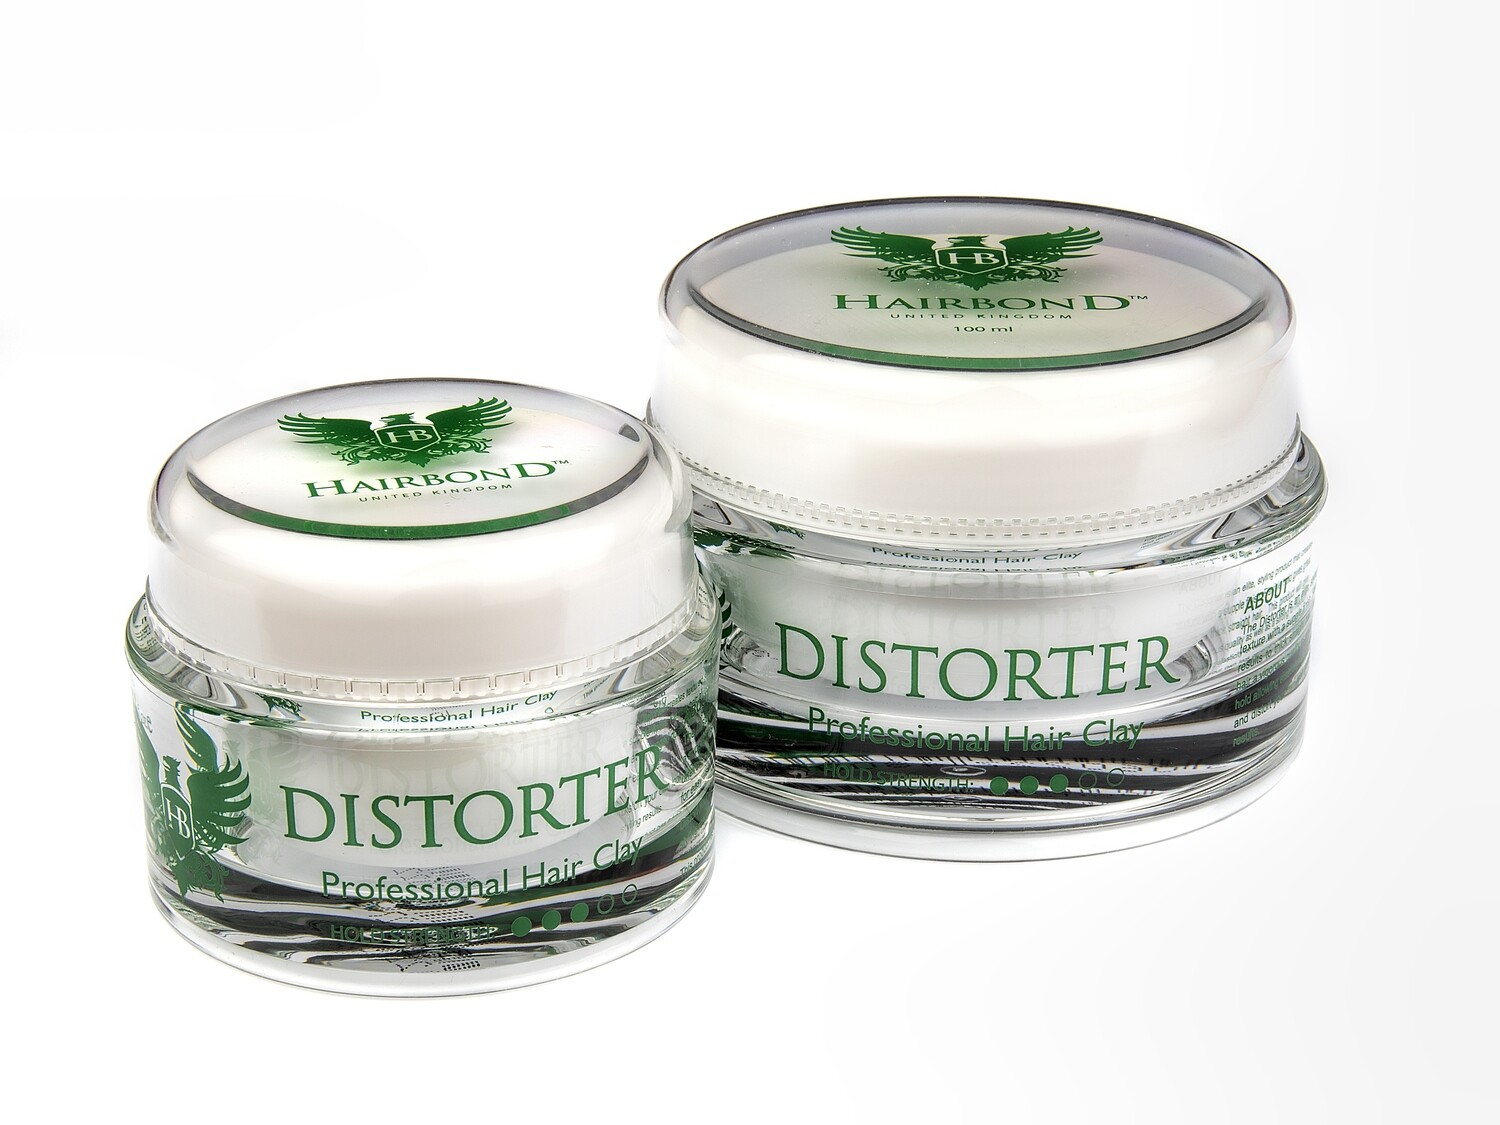 DUO Hairbond Distorter Professional Hair Clay Pack (50ml & 100ml)